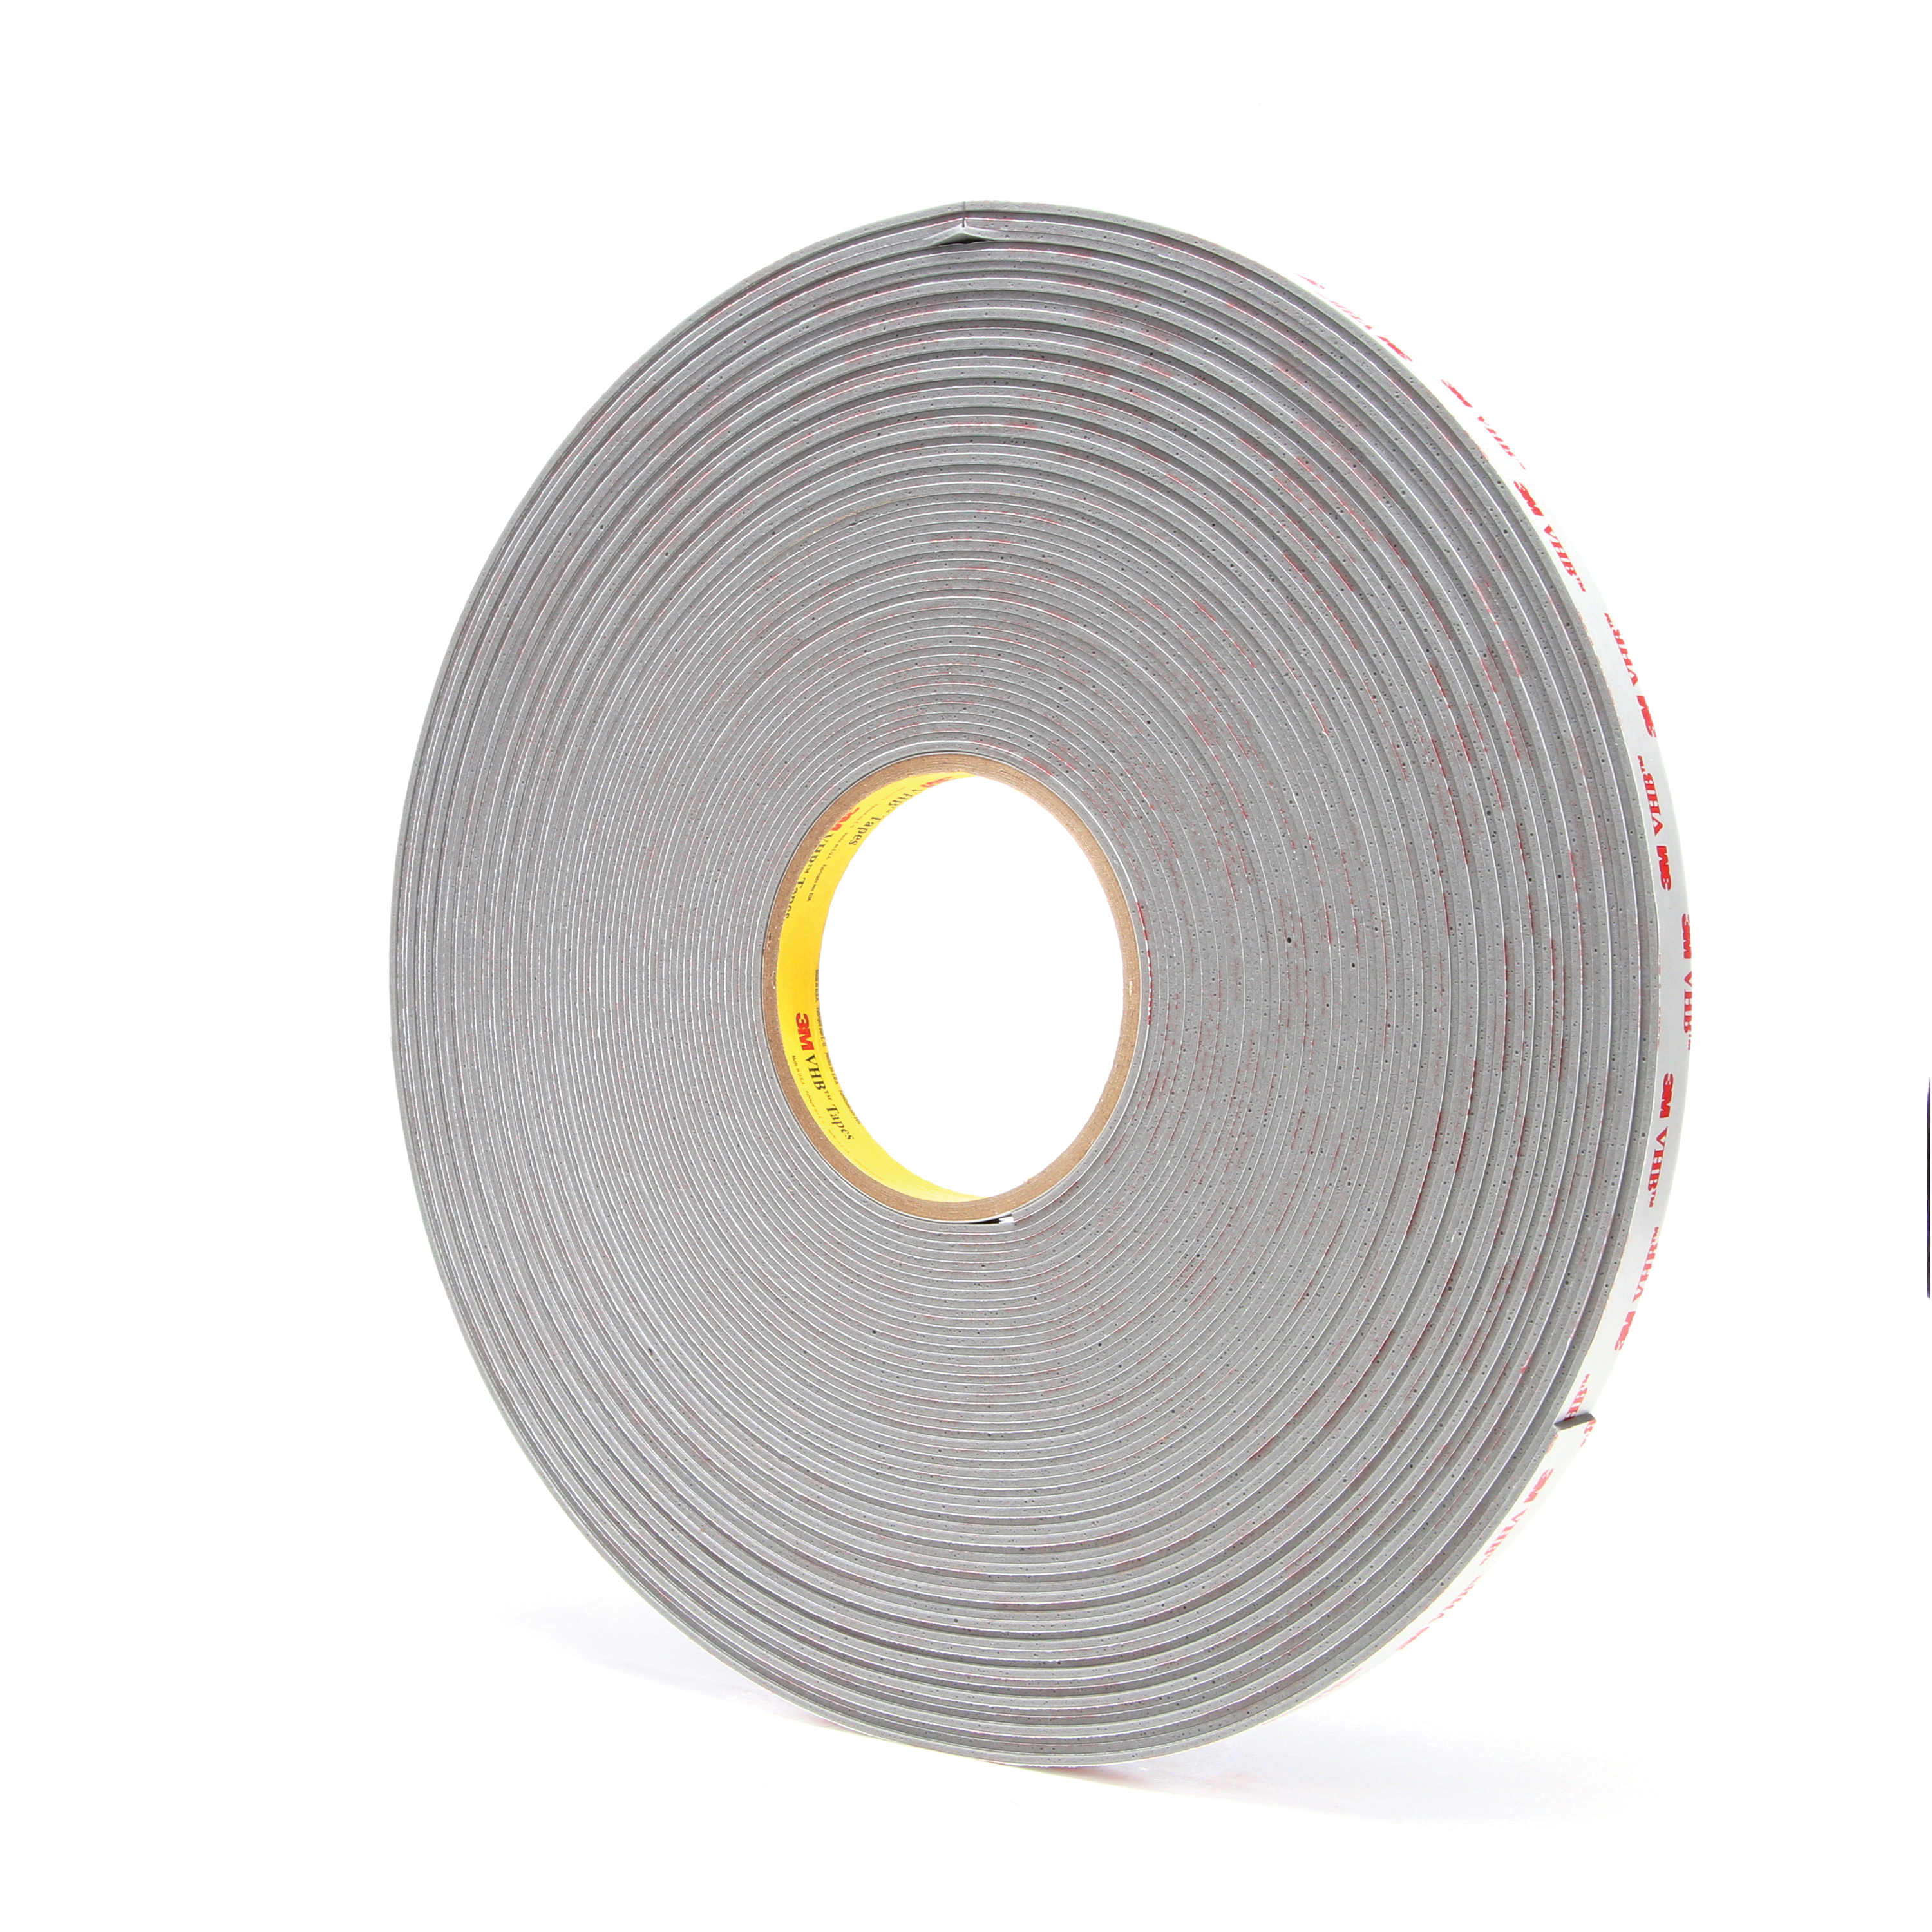 3M™ VHB™ 021200-24376 4956 Pressure Sensitive Double Sided Bonding Tape, 36 yd L x 1/2 in W, 0.062 in THK, Multi-Purpose Acrylic Adhesive, Acrylic Foam Backing, Gray